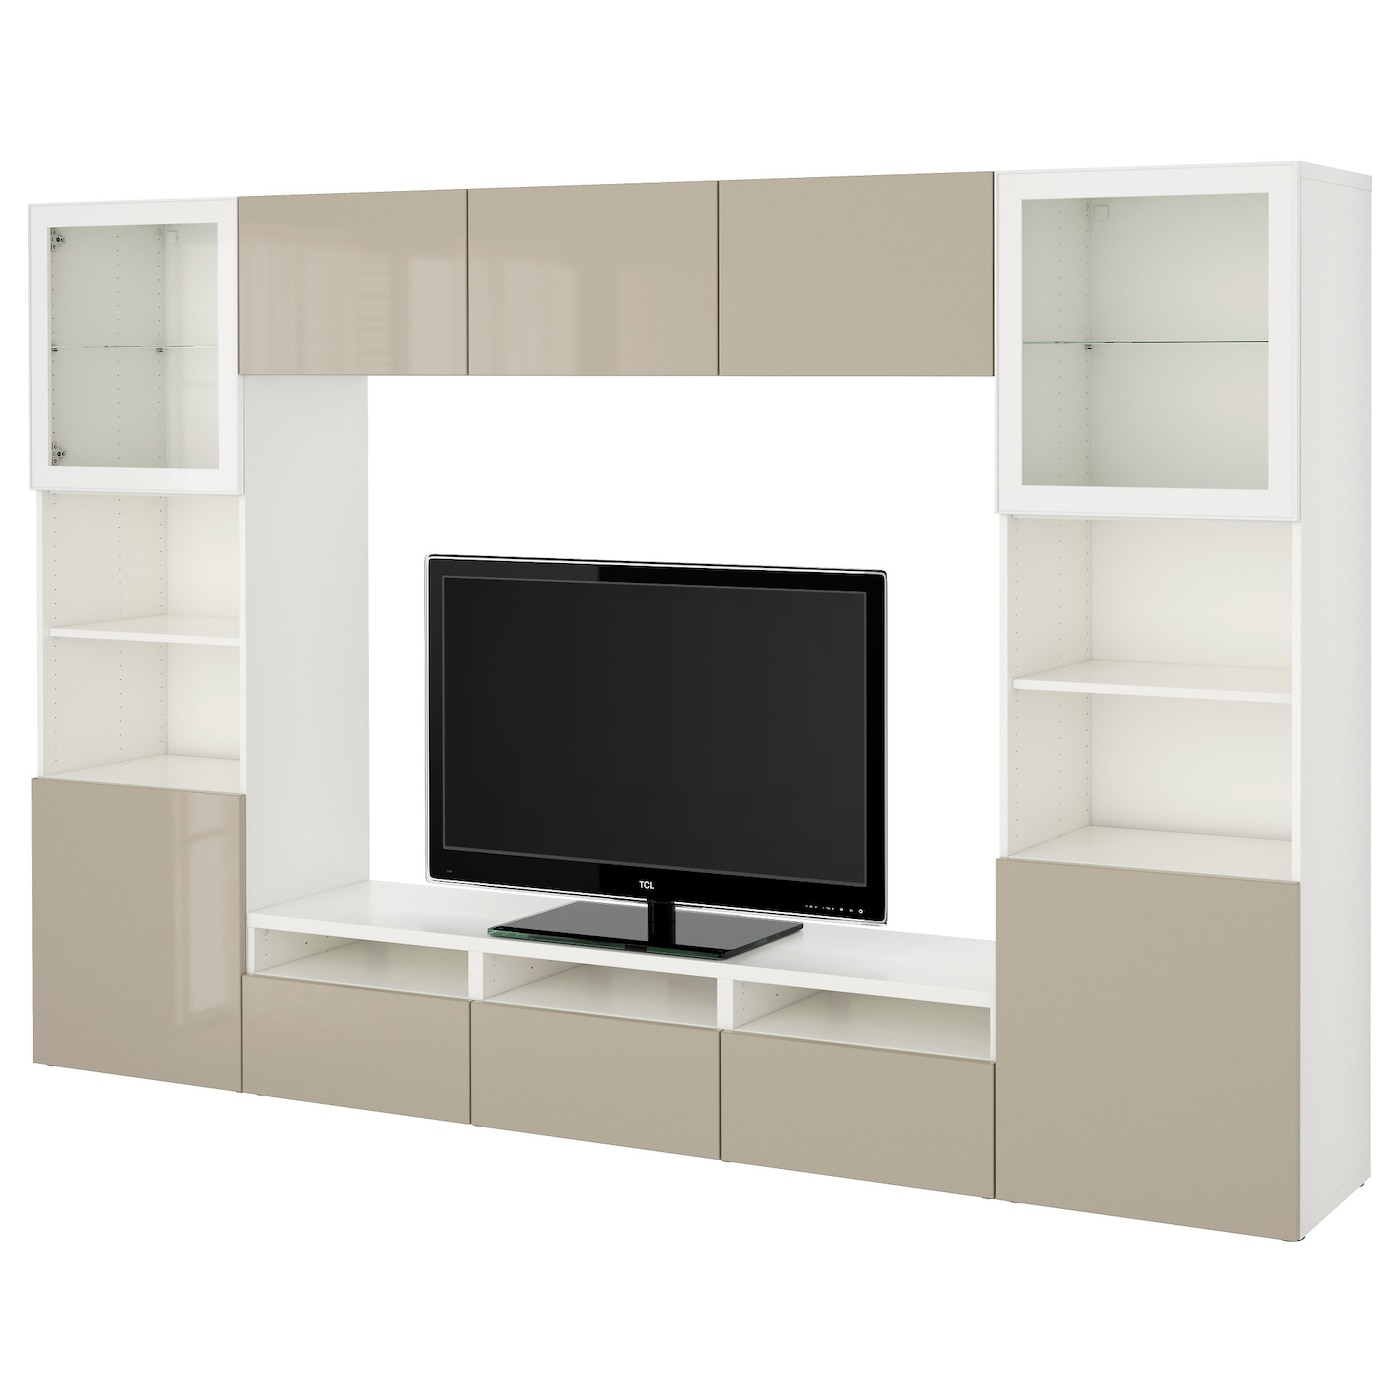 best tv storage combination glass doors white selsviken high gloss beige clear glass 300 x 40 x. Black Bedroom Furniture Sets. Home Design Ideas